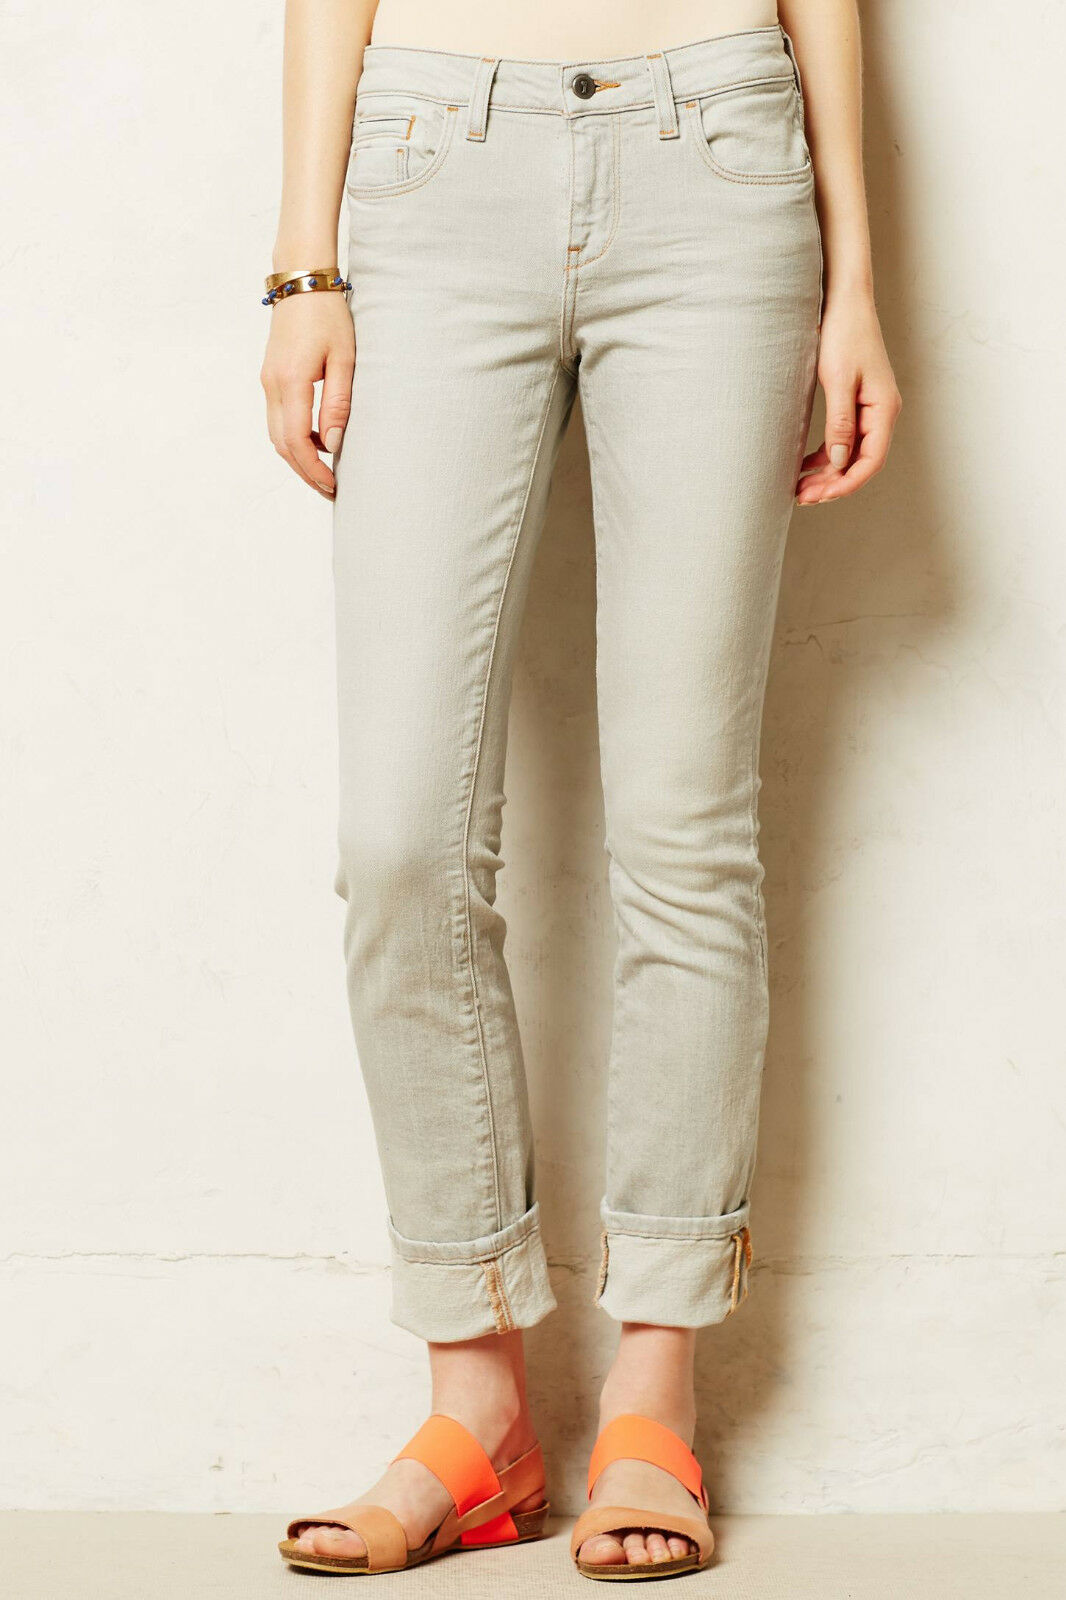 Pilcro Stet Cuffed Jeans Pants Sizes 31, 32 Light Grey color NW ANTHROPOLOGIE Ta